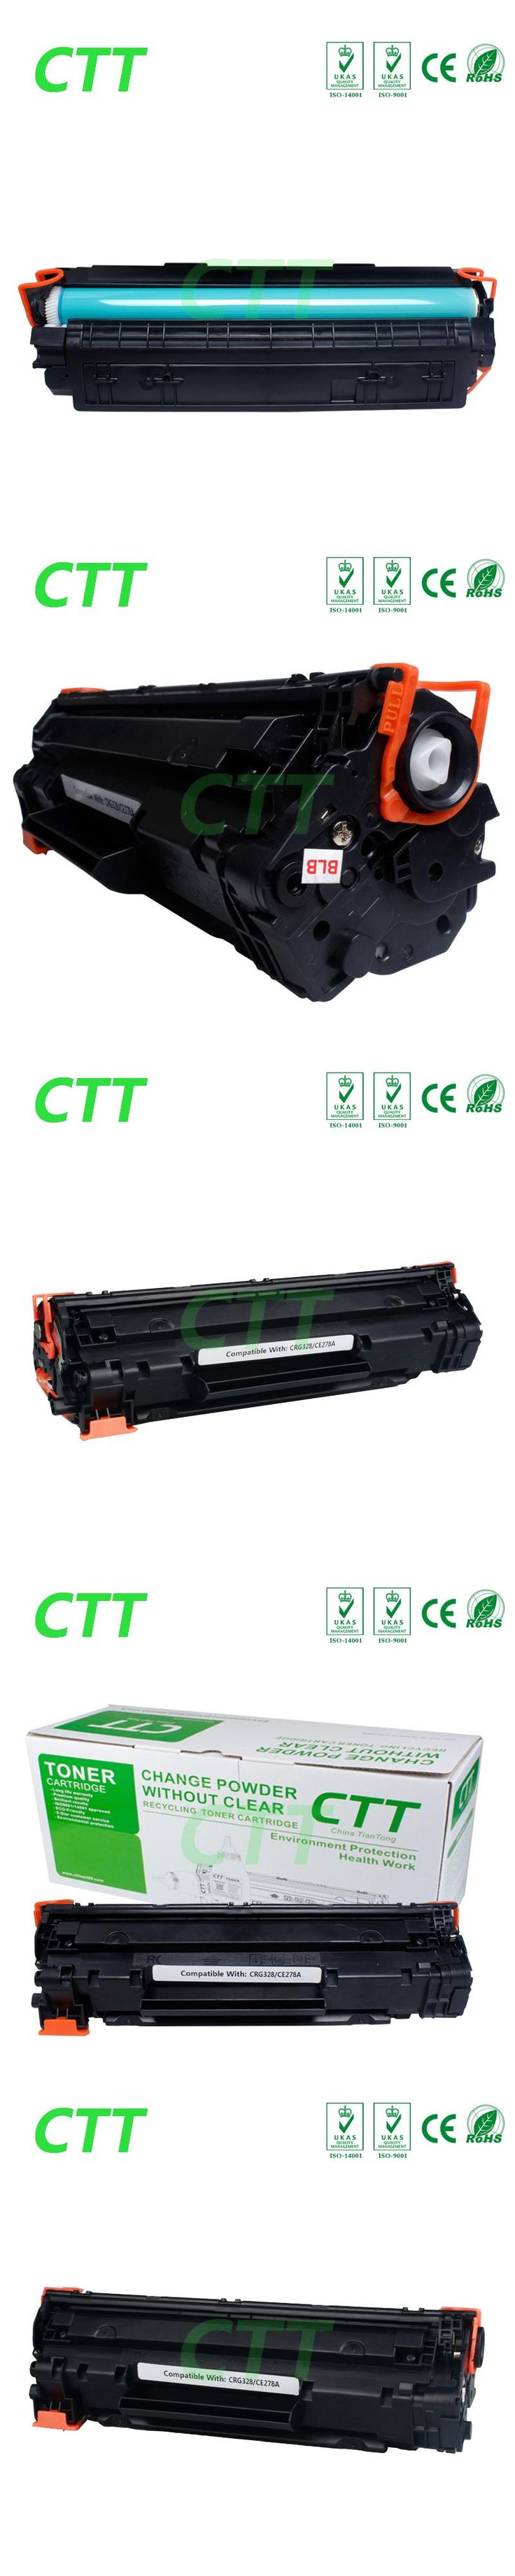 new product 78A 278a CRG328 for patible toner cartridge for HP CE278A use for HP Laserjet